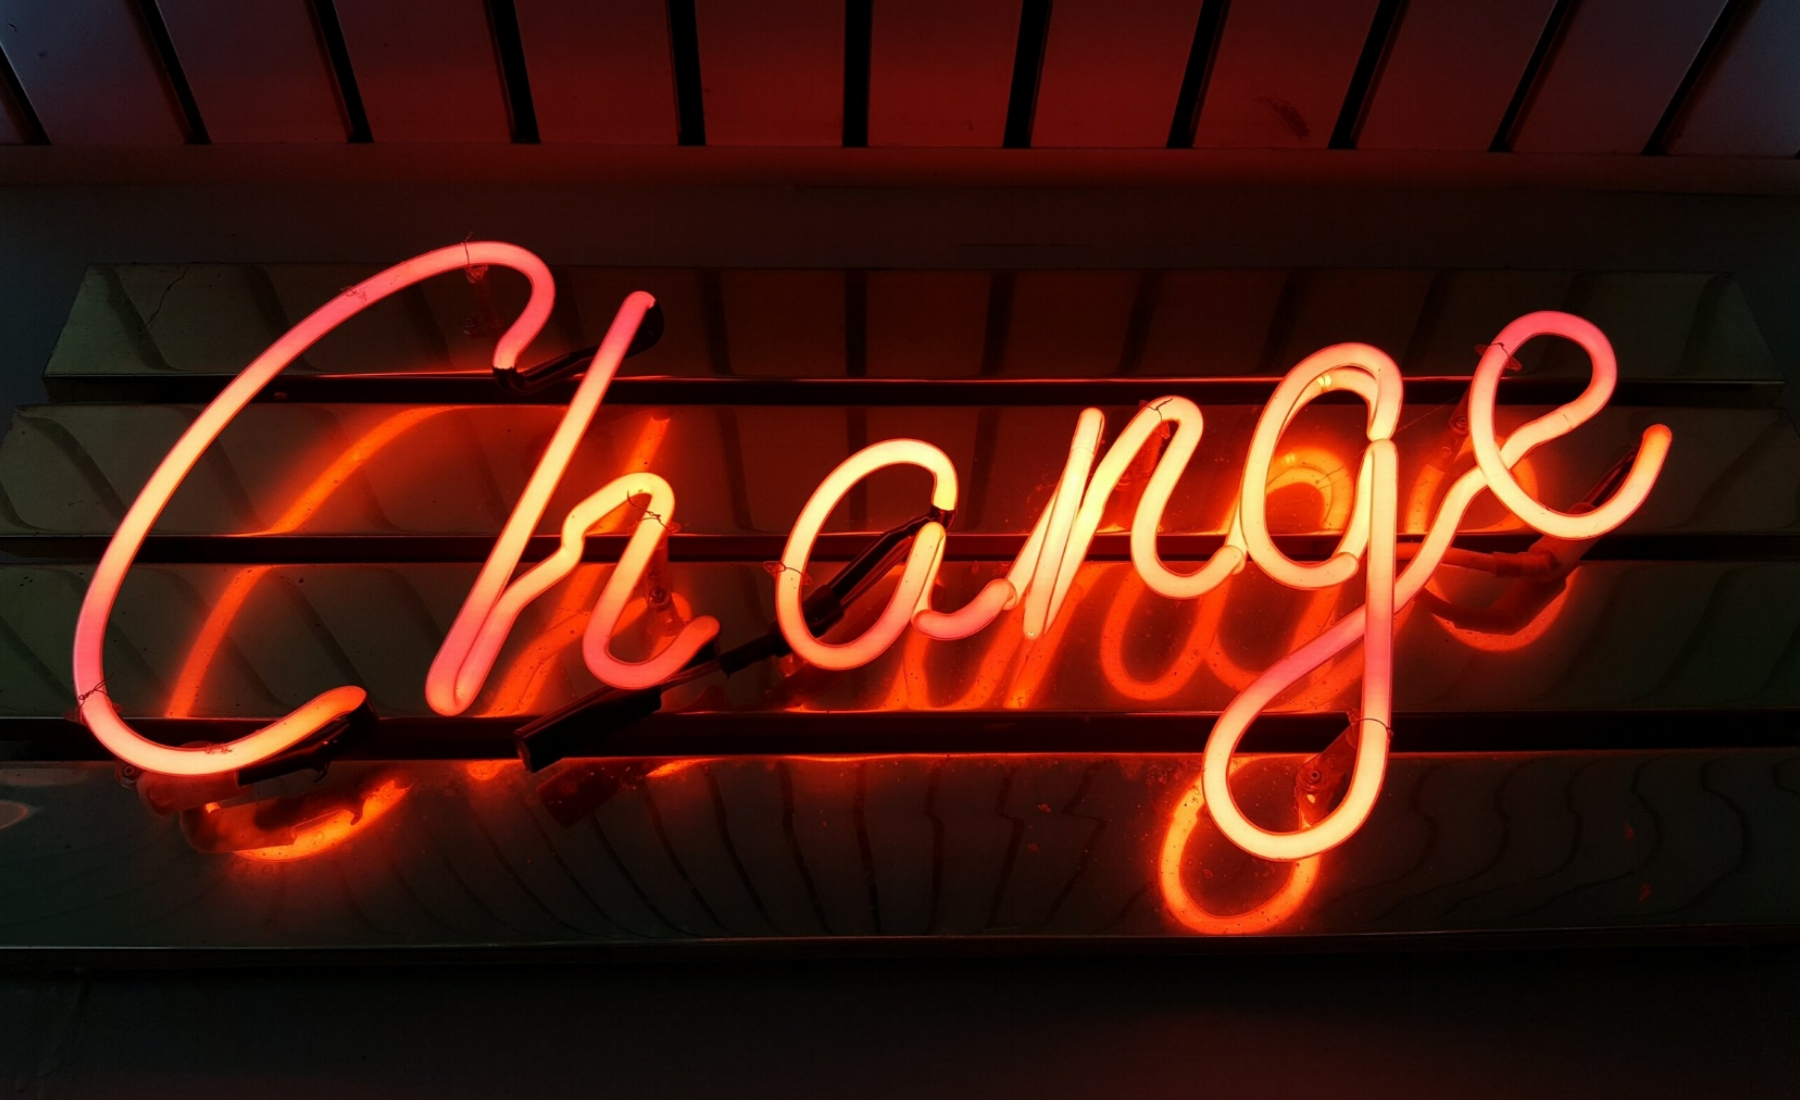 Change Management - Helping educational stakeholders sustain organizational changes without succumbing to innovation fatigue.